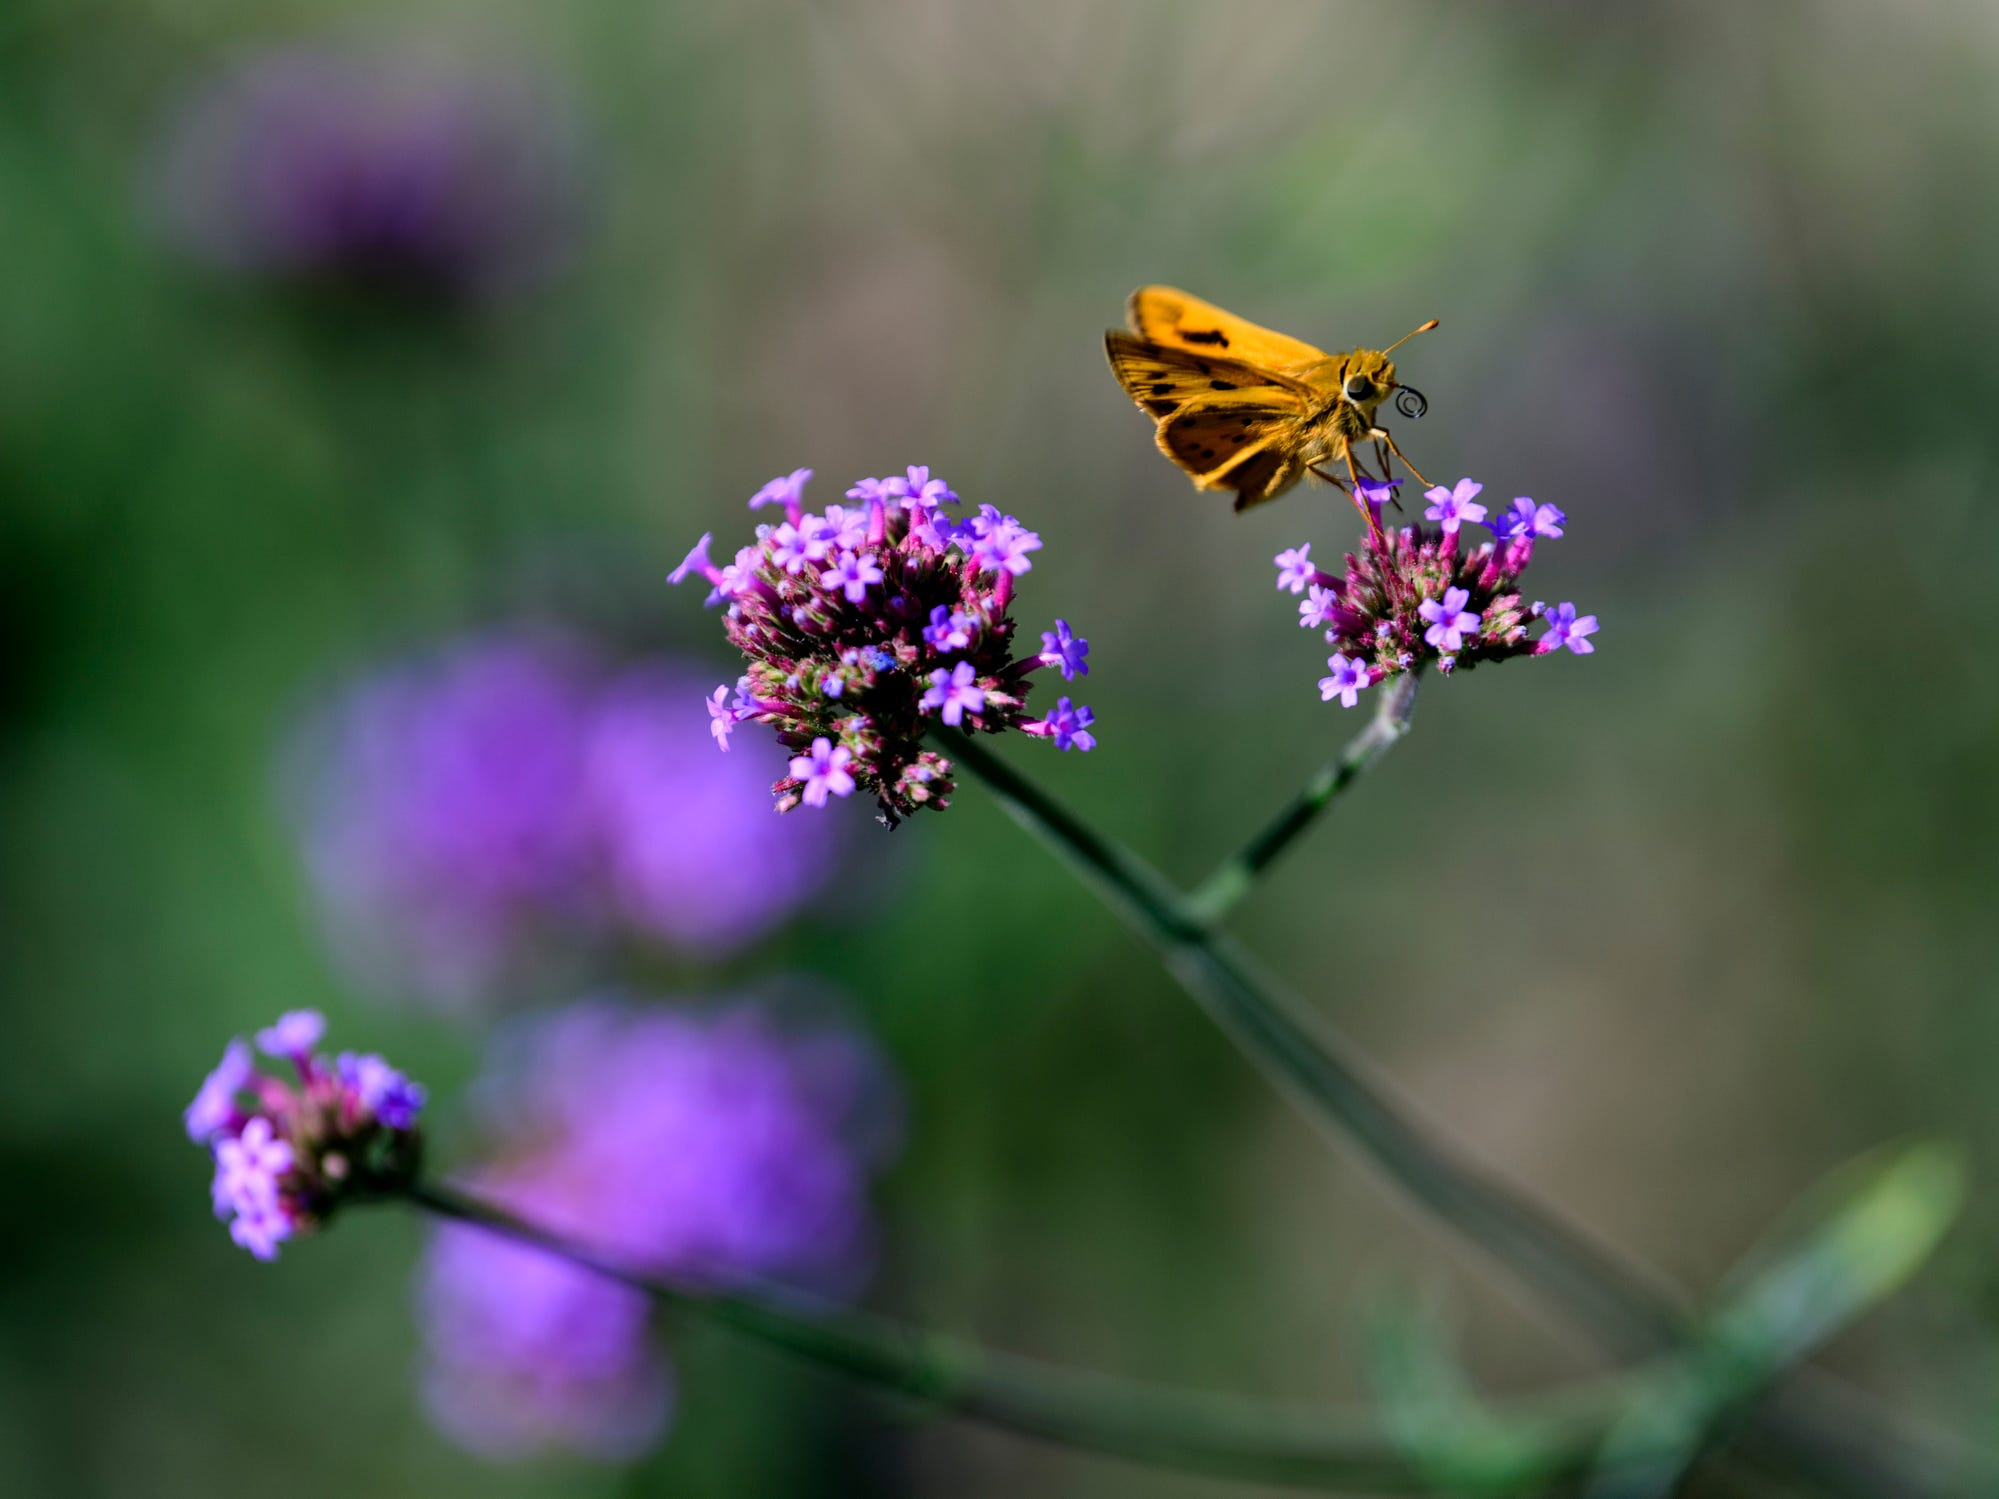 A small Skipper butterfly sits on top of a Verbena bonariensis plant inside the Wildlife Garden at the Hartman Arboretum located on the northwest side of Evansville, Wednesday morning. The non-profit arboretum was founded in 2001 by Grant and Jean Hartman, who converted the pasturelands around their home into a nature education area.